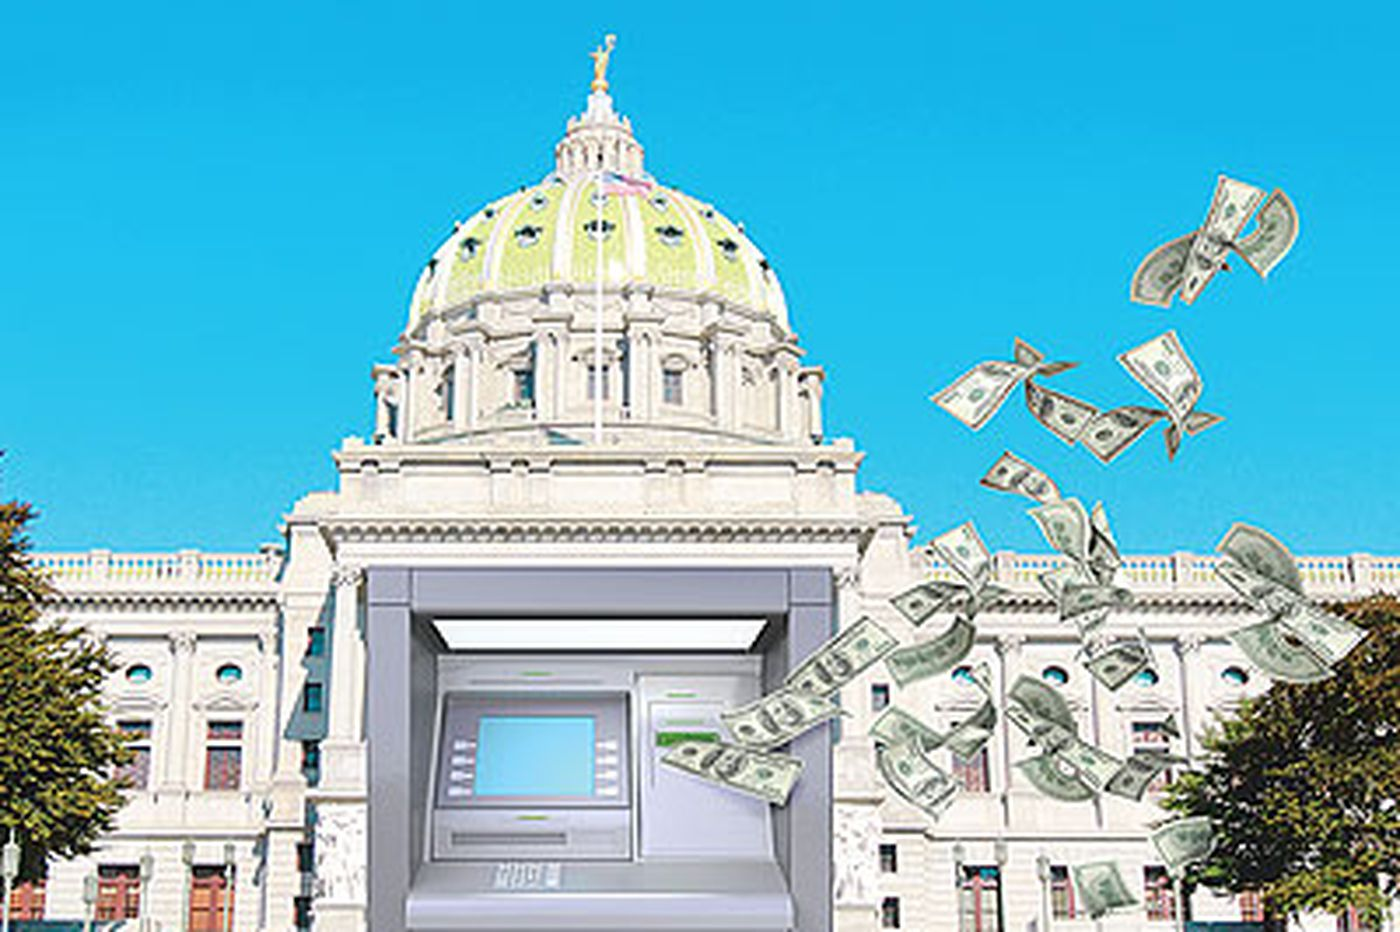 Pa. & N.J. labor deals show great divide: Jersey state workers must long for a Corbett